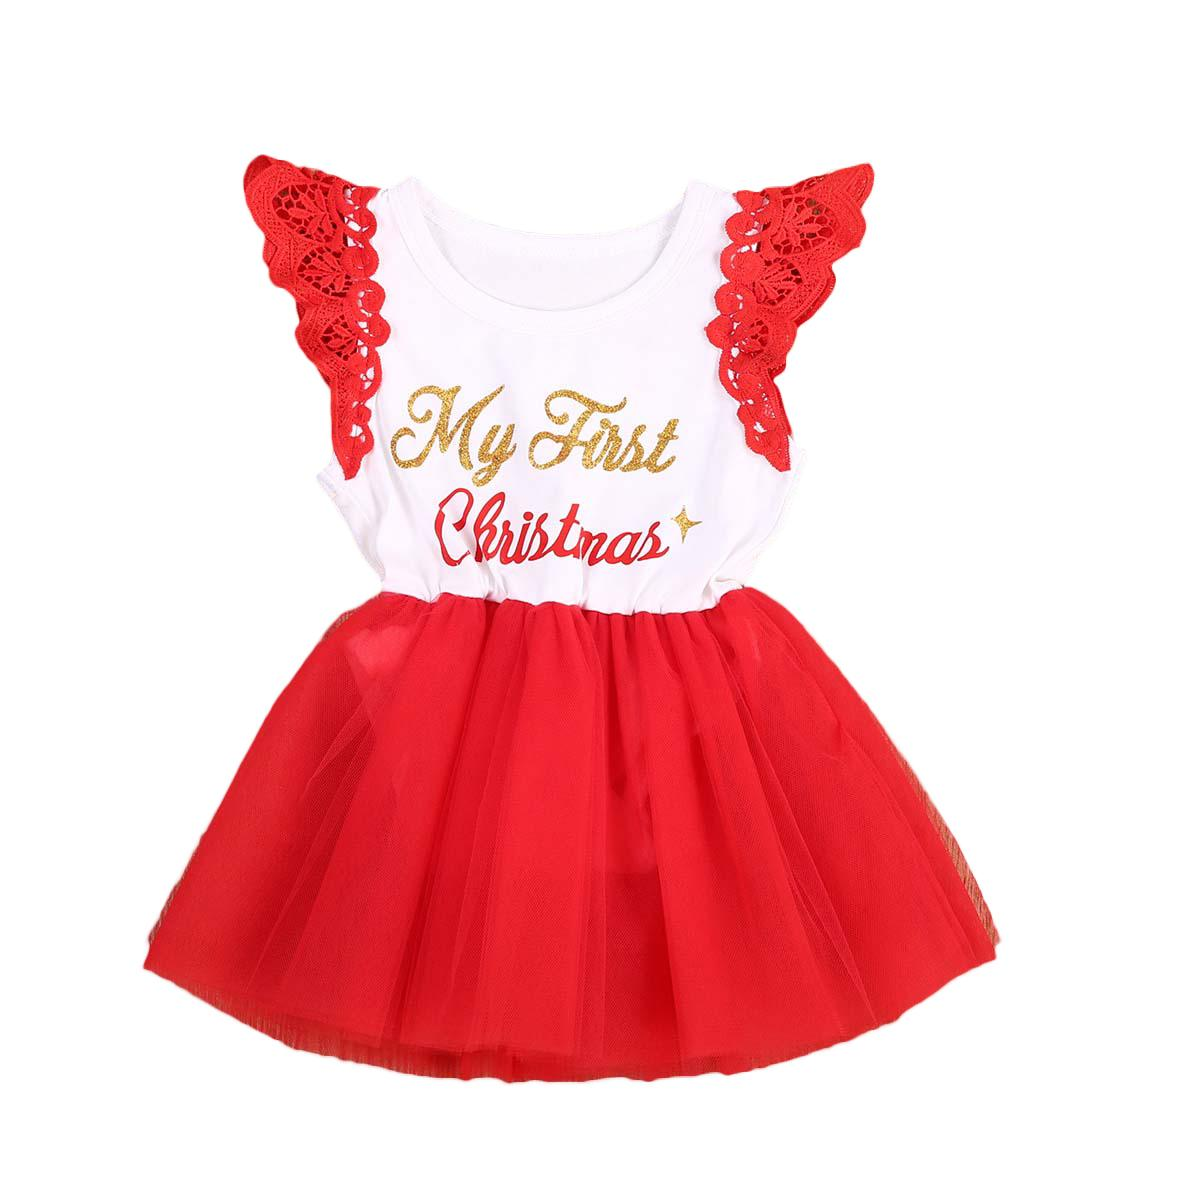 4734aefc5 2019 Newborn Infant Kids Baby Girl Clothes Christmas Lace Ruffles ...